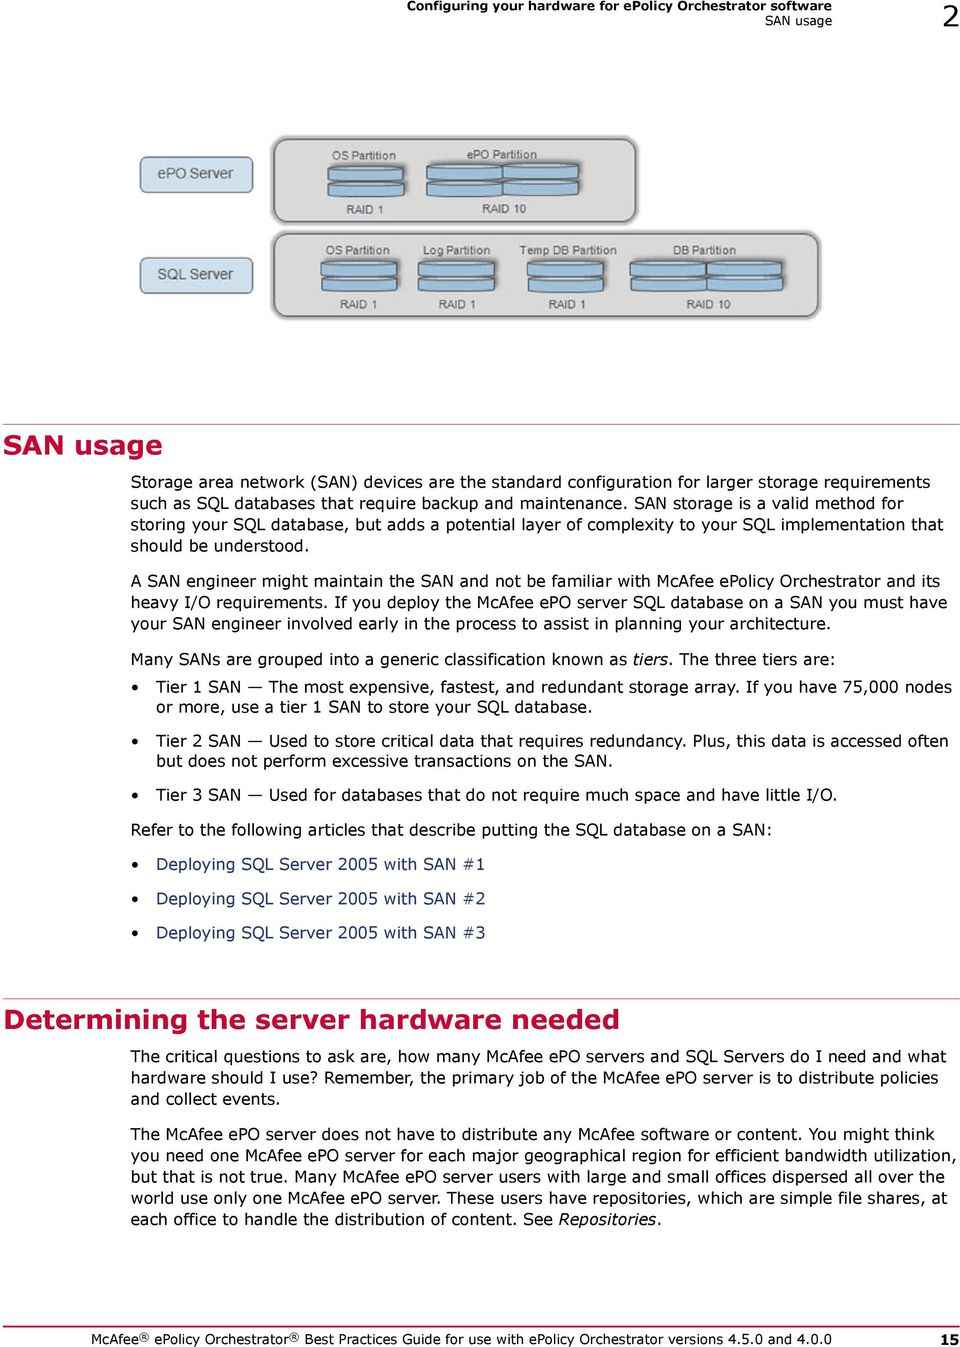 McAfee epolicy Orchestrator - PDF